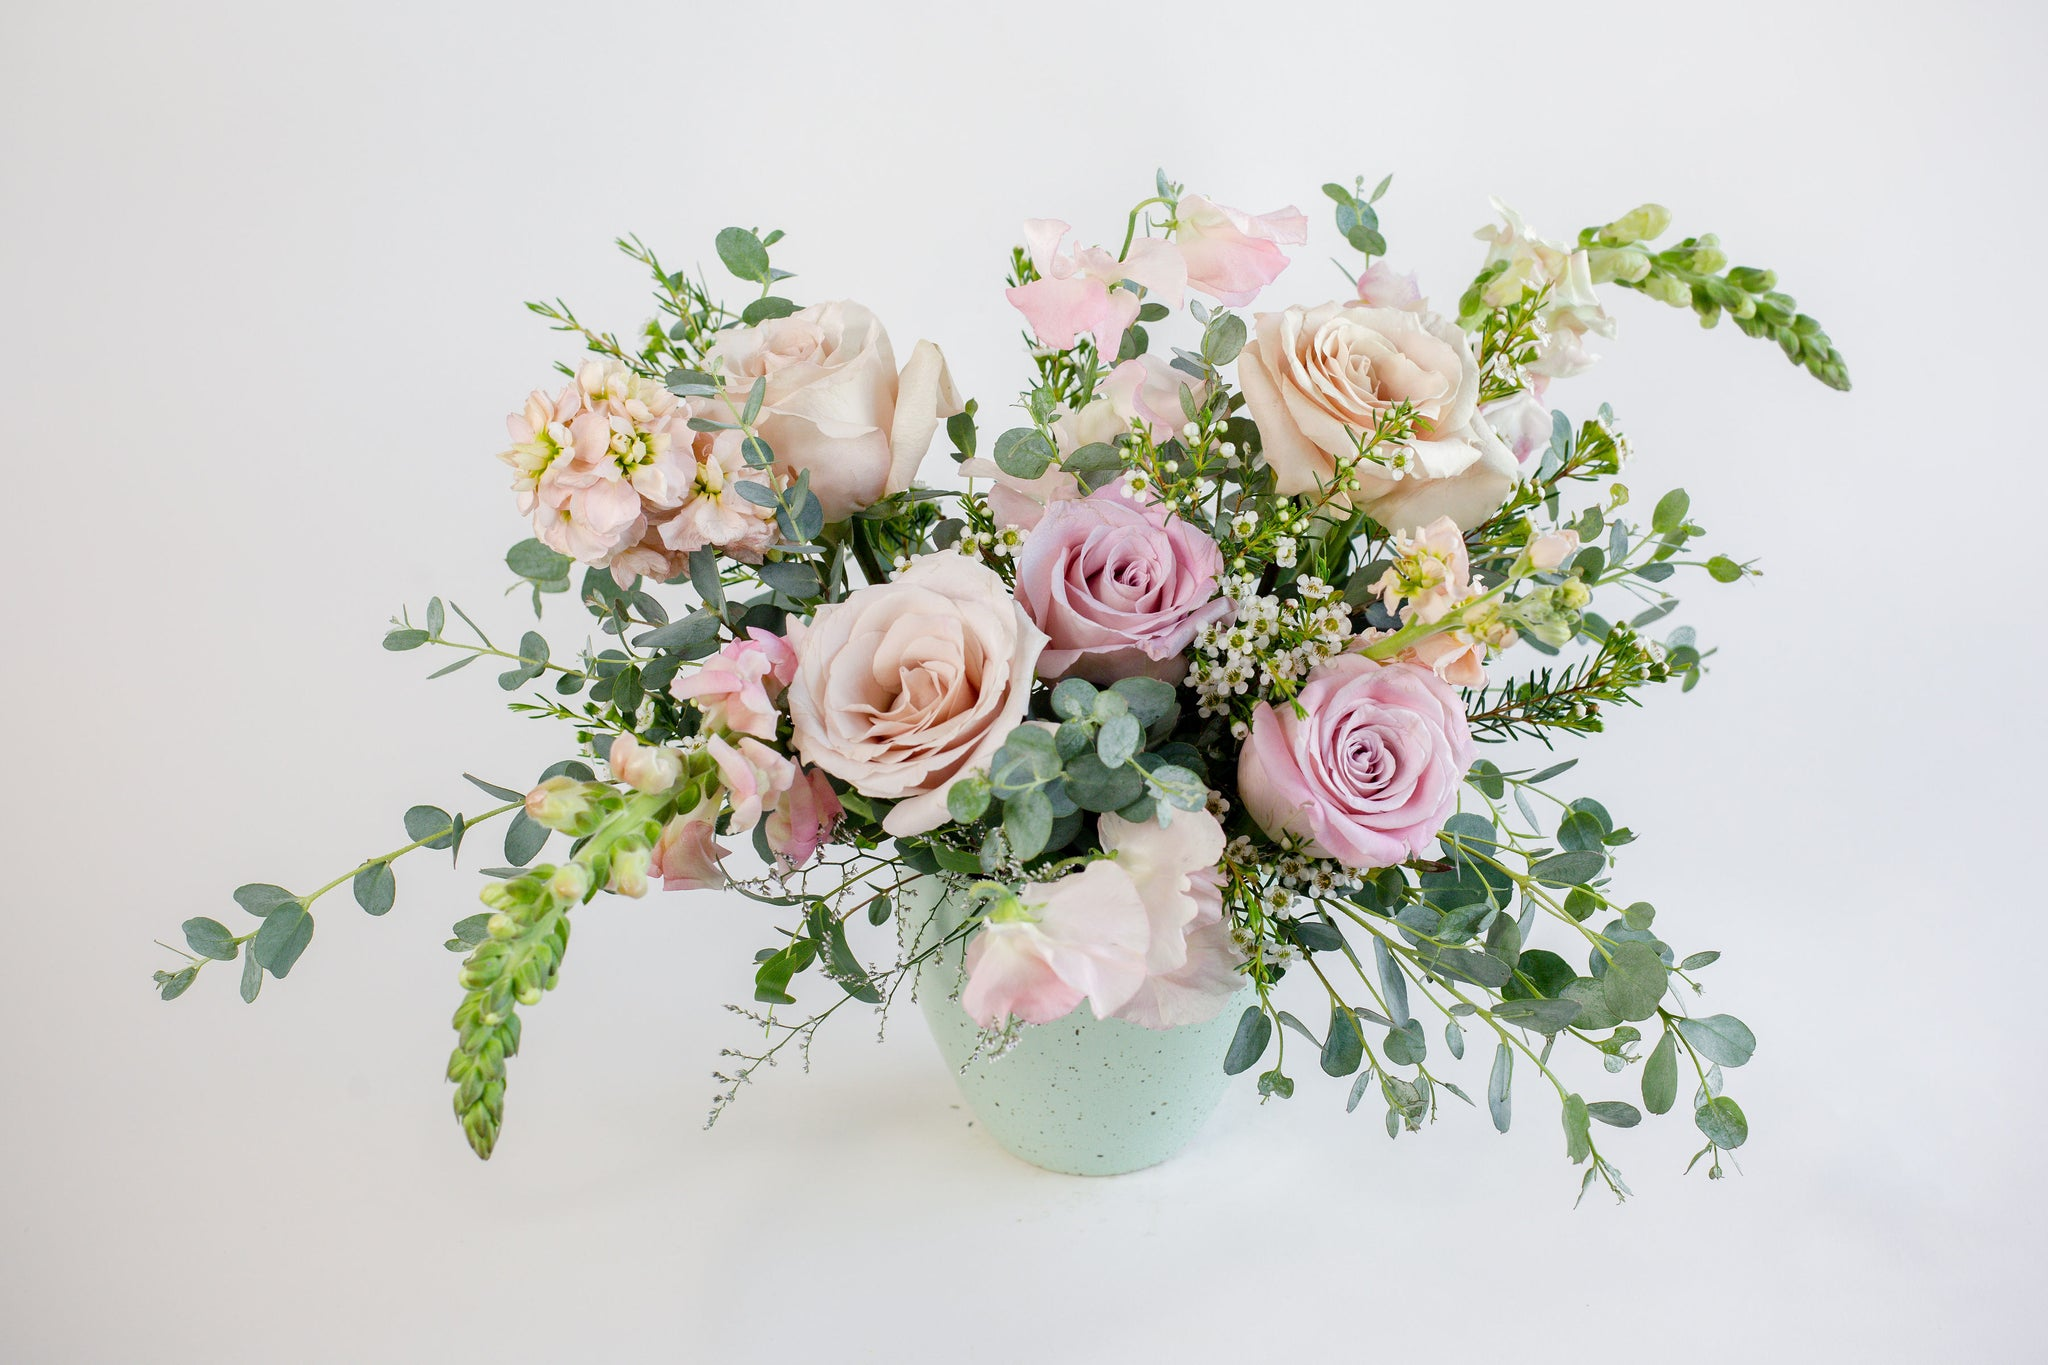 Vintage Charm - Flower Arrangement in Vase